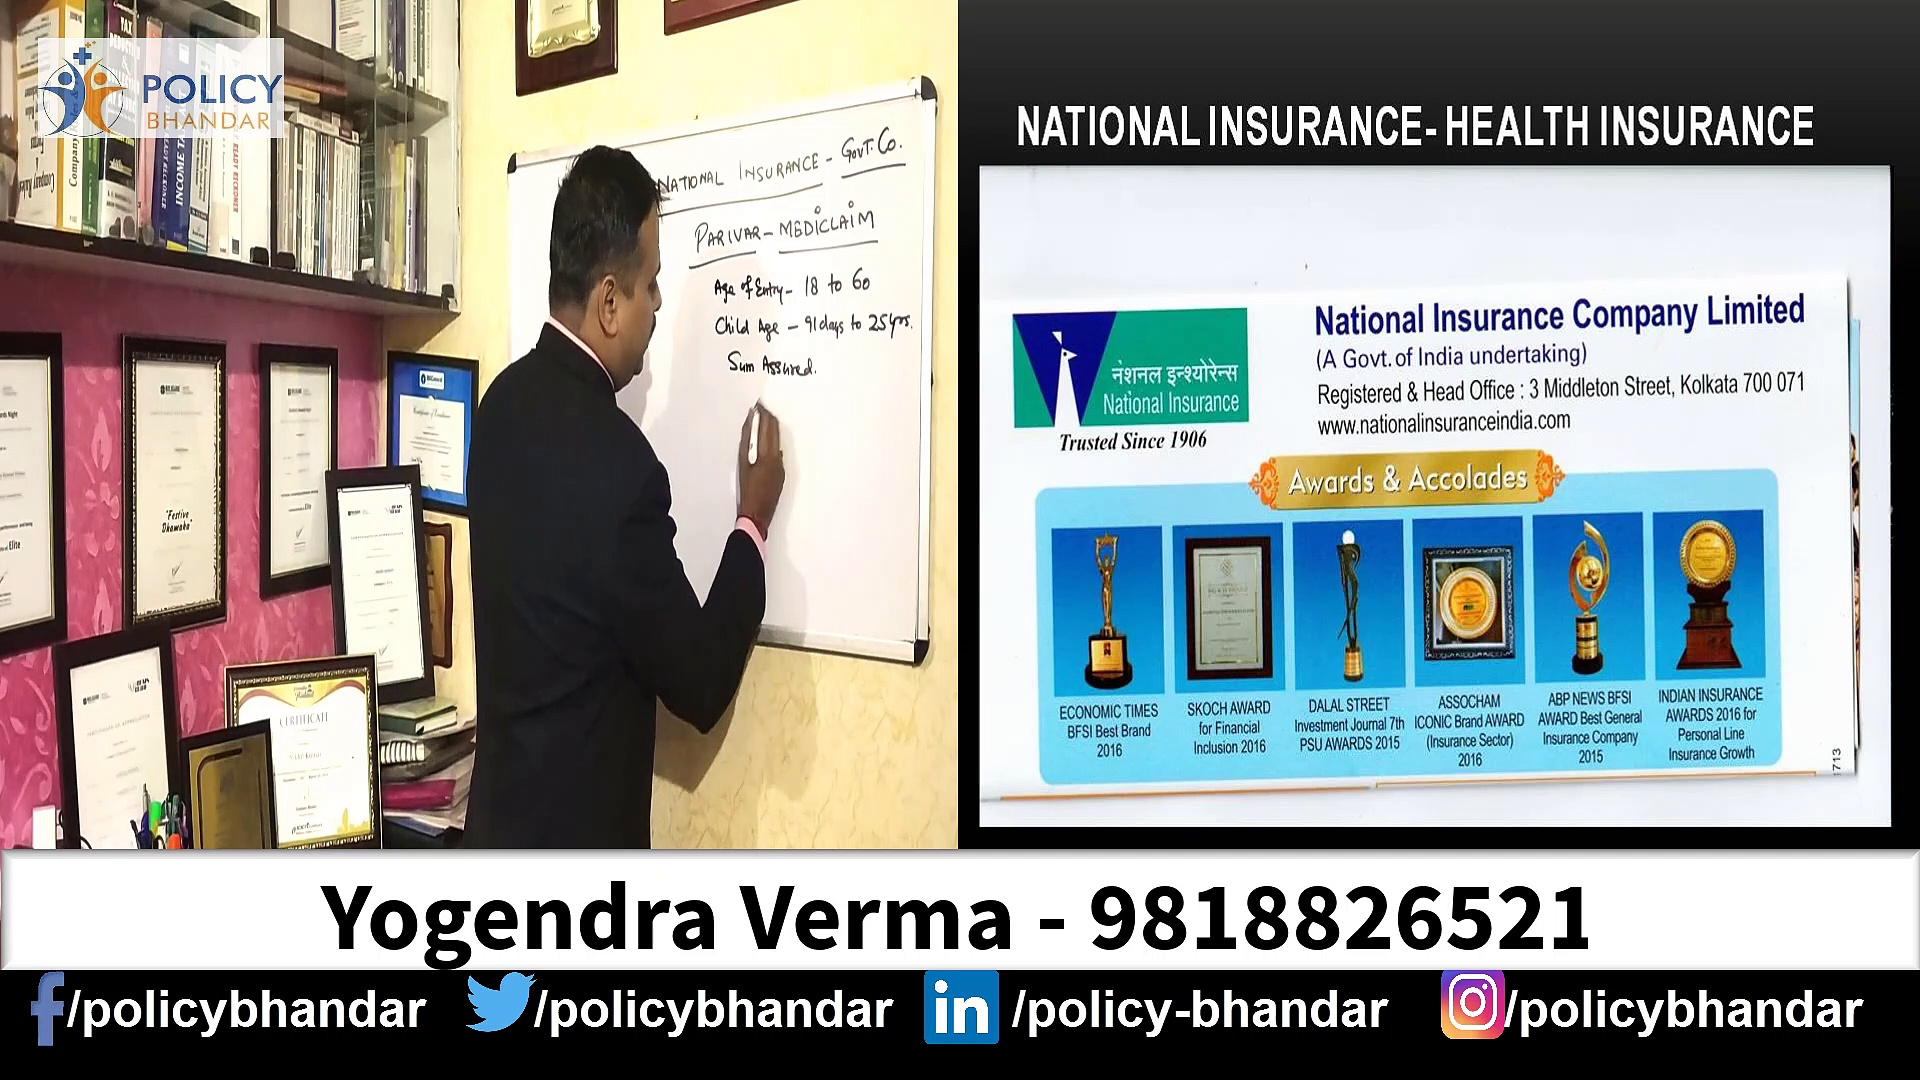 National Insurance Pariwar Mediclaim | Govt Best Health Insurance | Policy Bhandar | Yogendra Verma